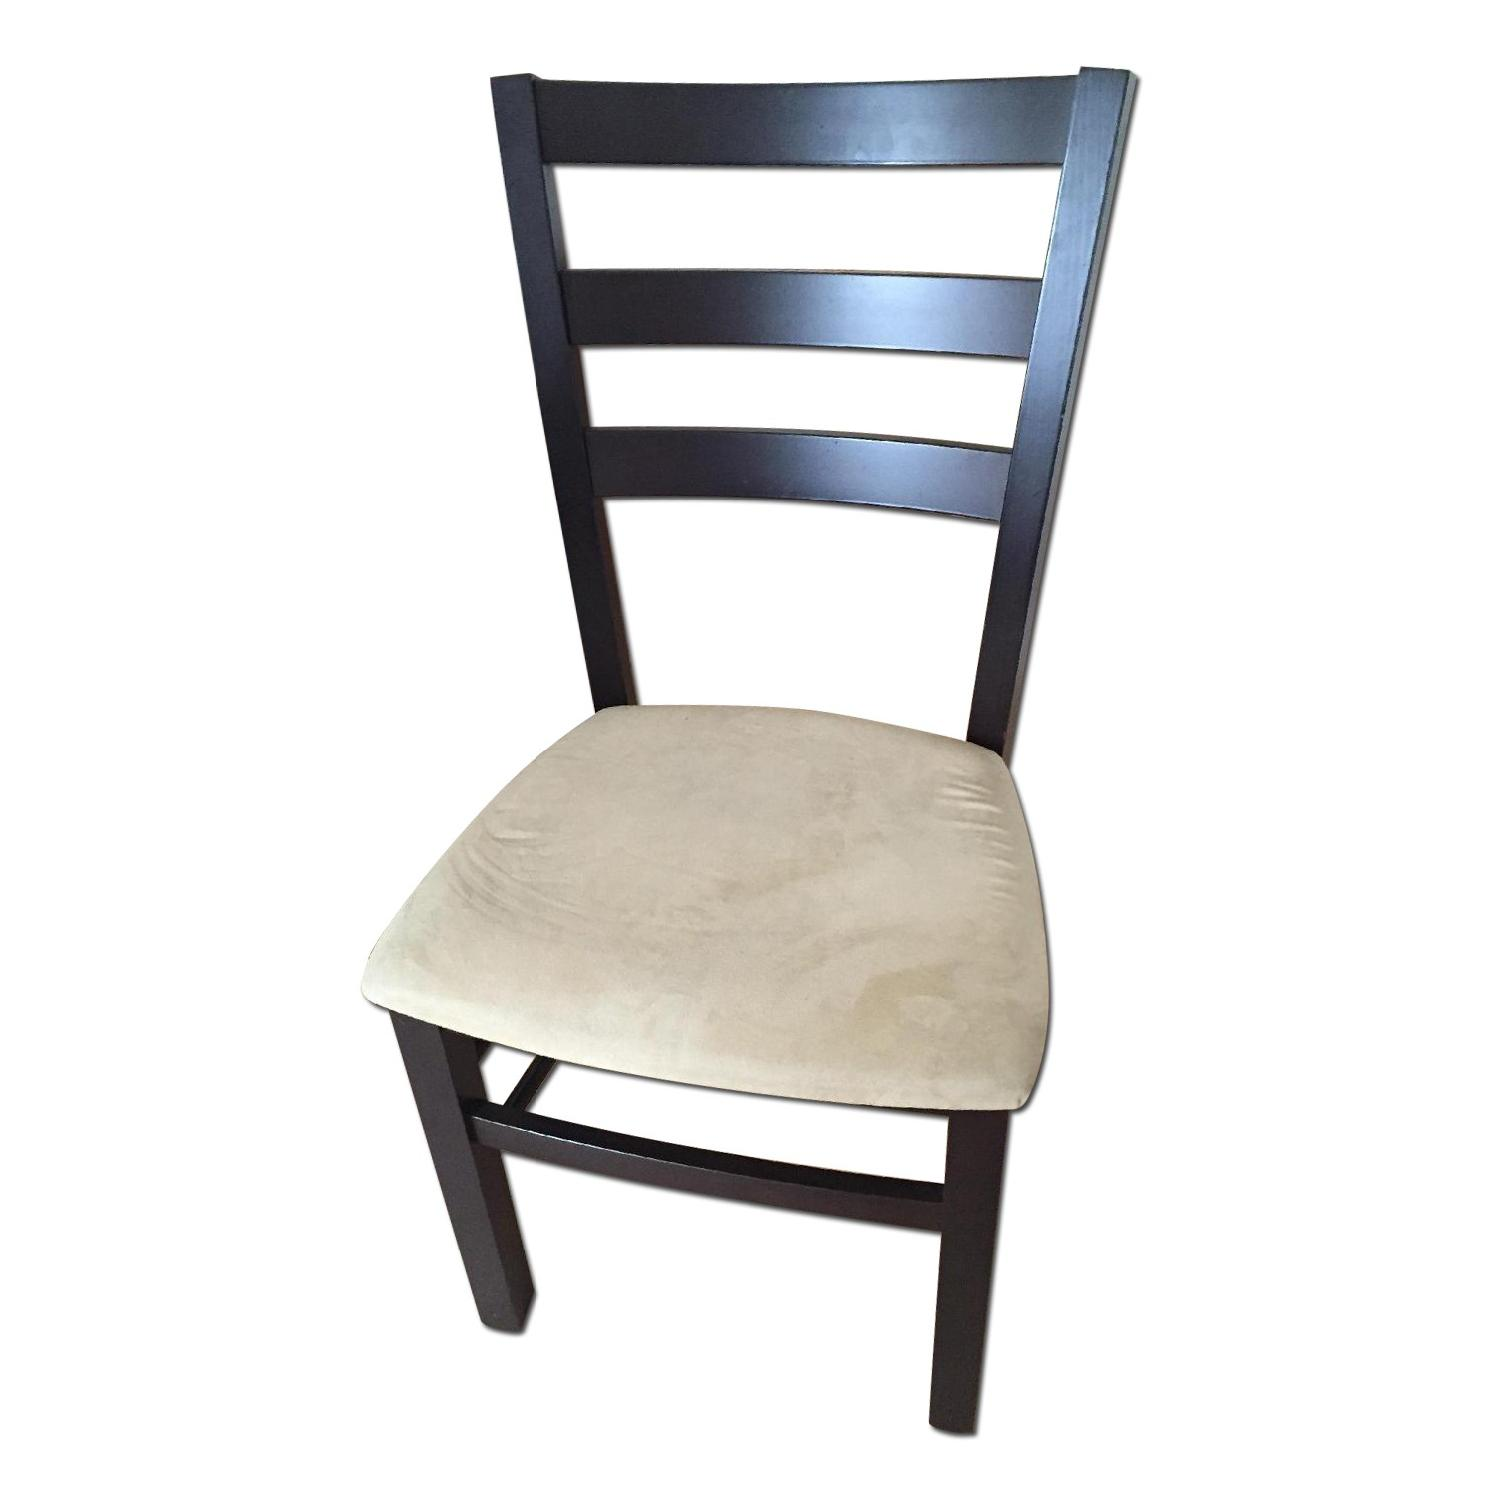 Macy's Wood & Tan Suede Dining Chairs - image-0